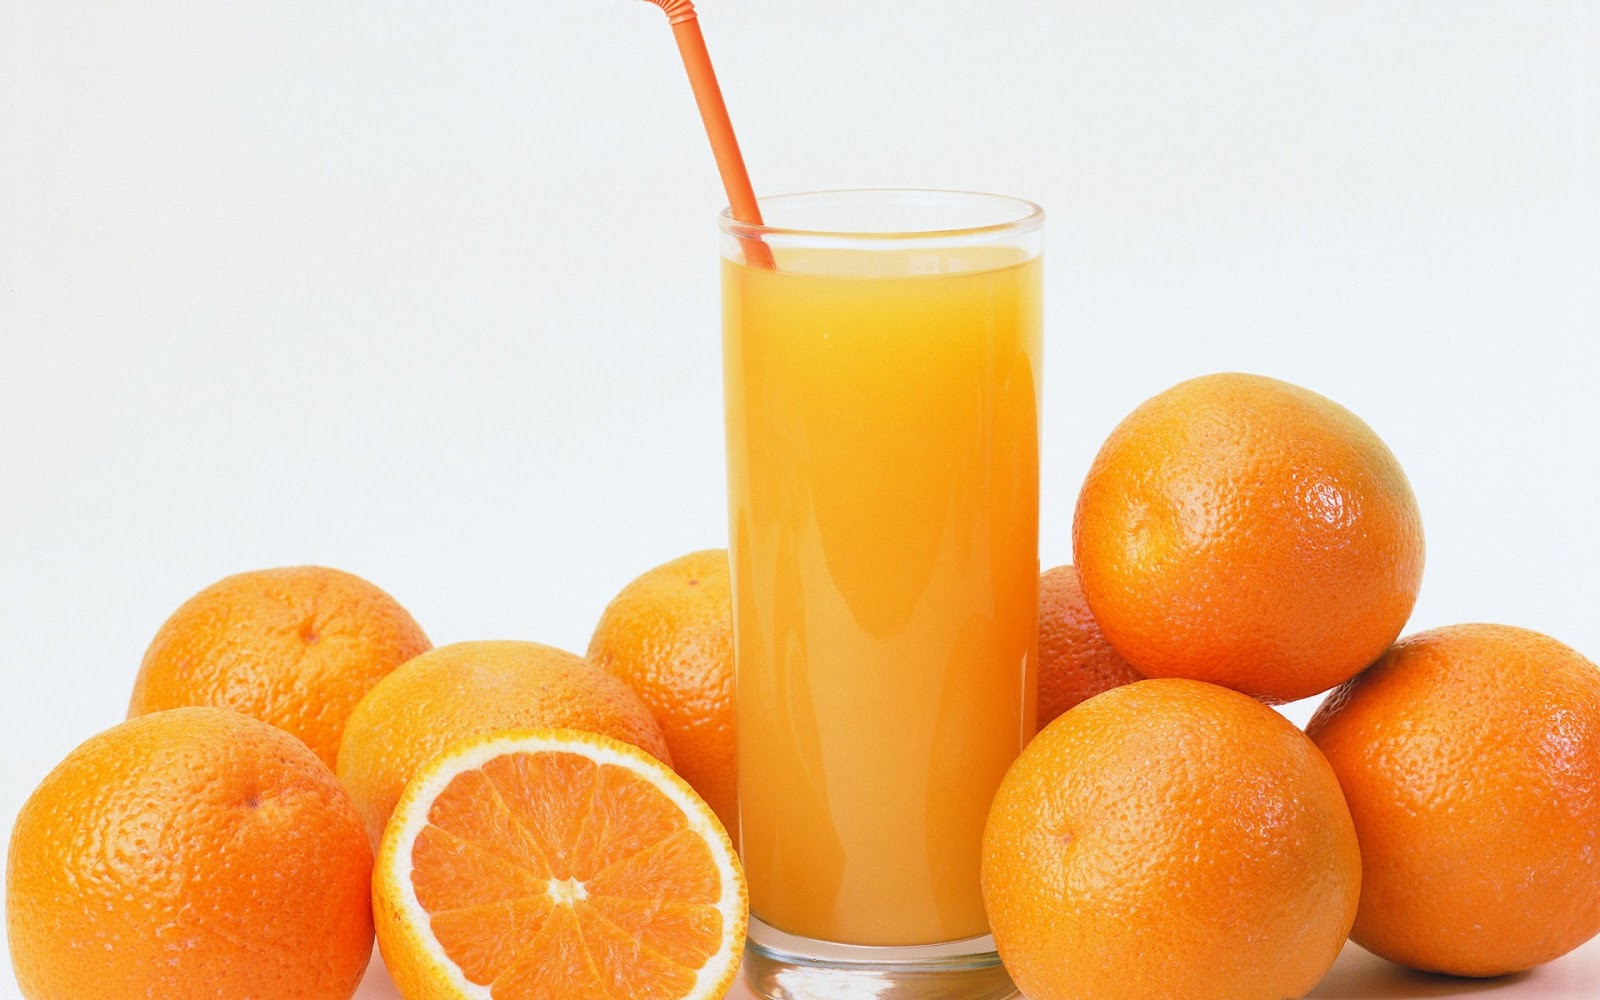 Orange Juicer For Orange Juice ~ Rajesh reviews orange juice makes you look more beautiful